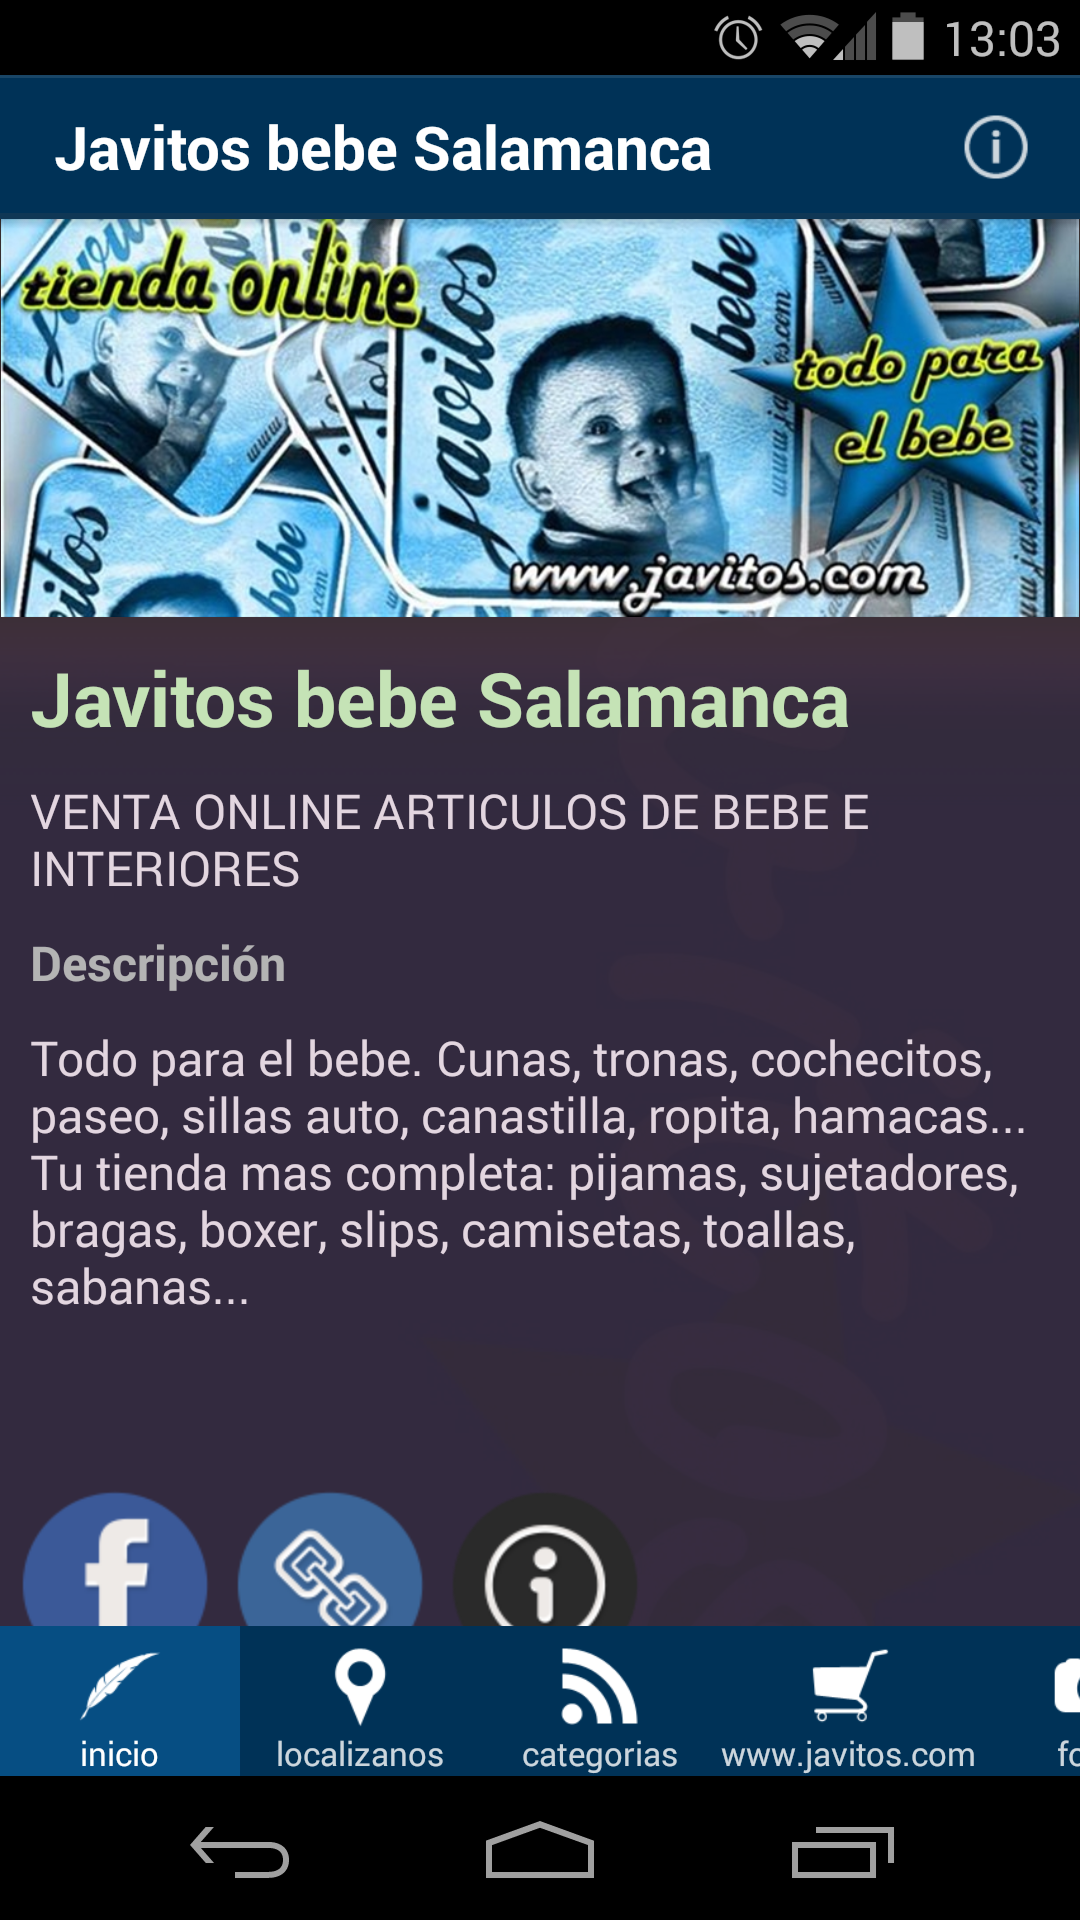 Amazon.com: javitos bebe Salamanca: Appstore for Android